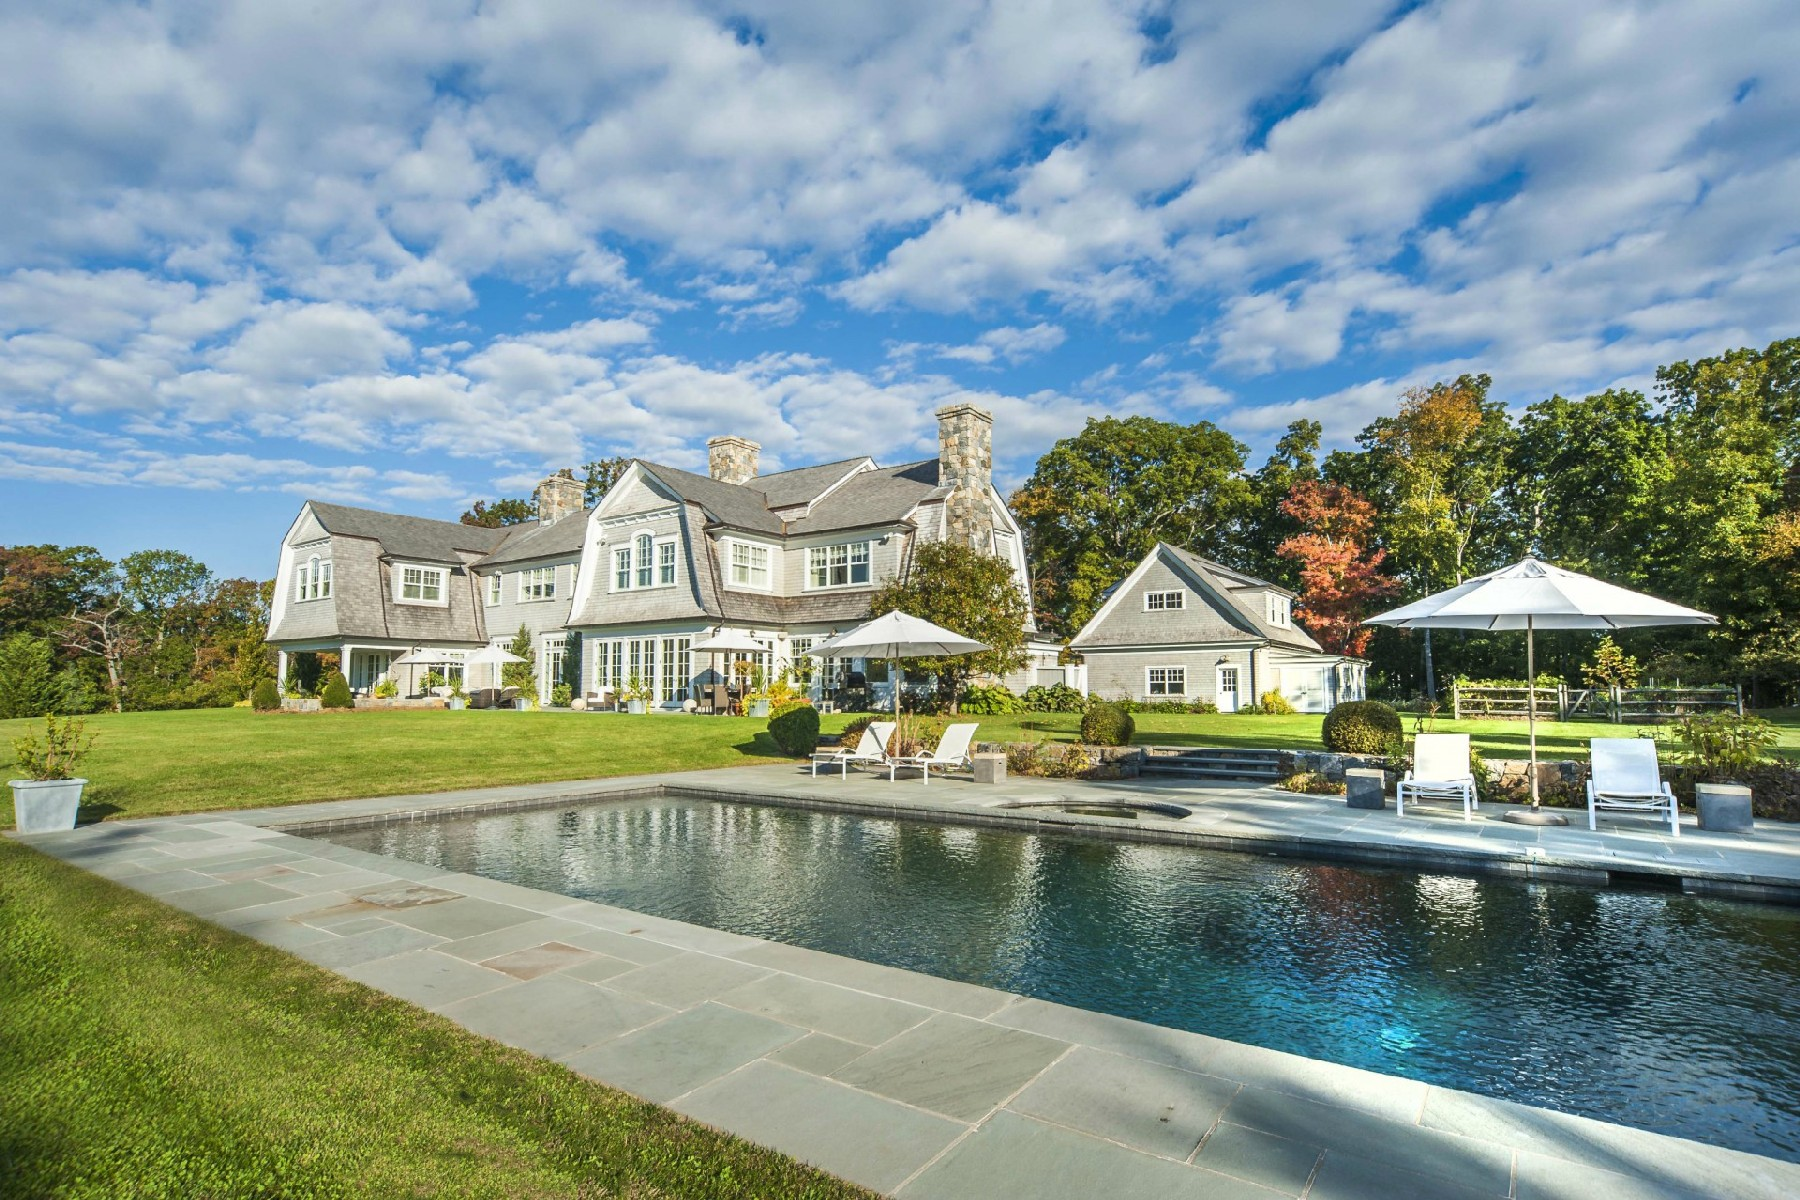 Casa Unifamiliar por un Venta en Magnificent Estate on 7.1 Acre Island 20 Juniper Darien, Connecticut 06820 Estados Unidos